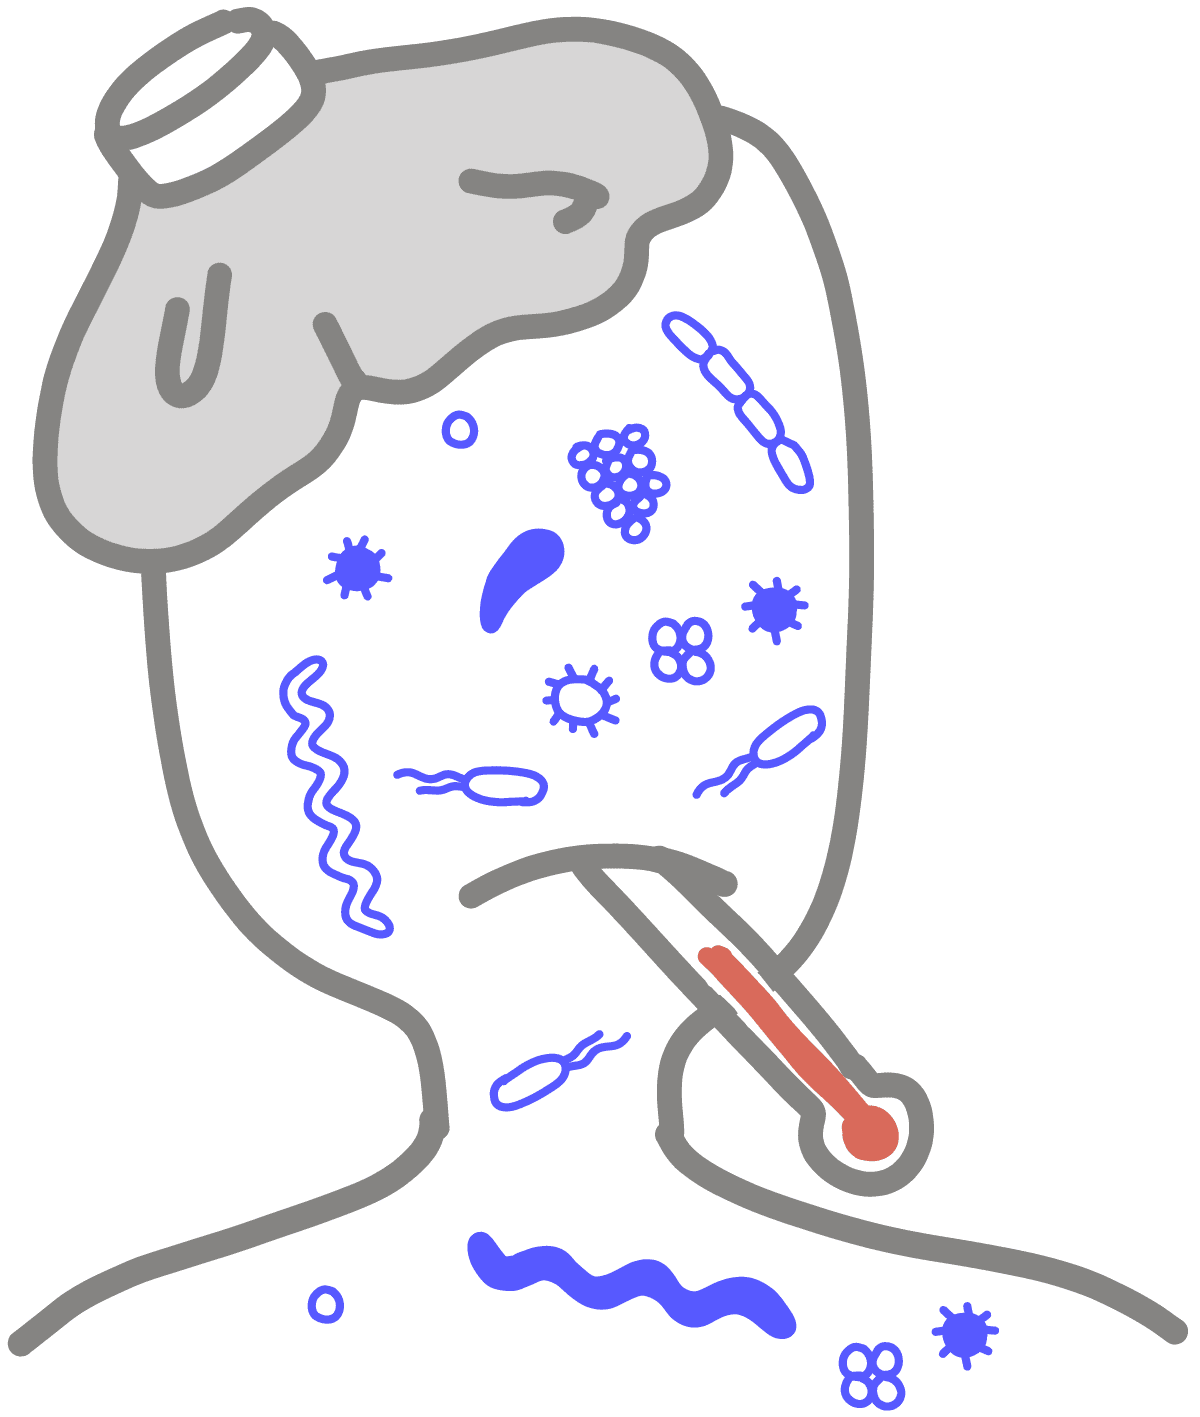 Image of a headshot containing pathogens on its face. The image shows pathogens making a person sick. The person has a thermometer in their mouth and a ice bag on their head.